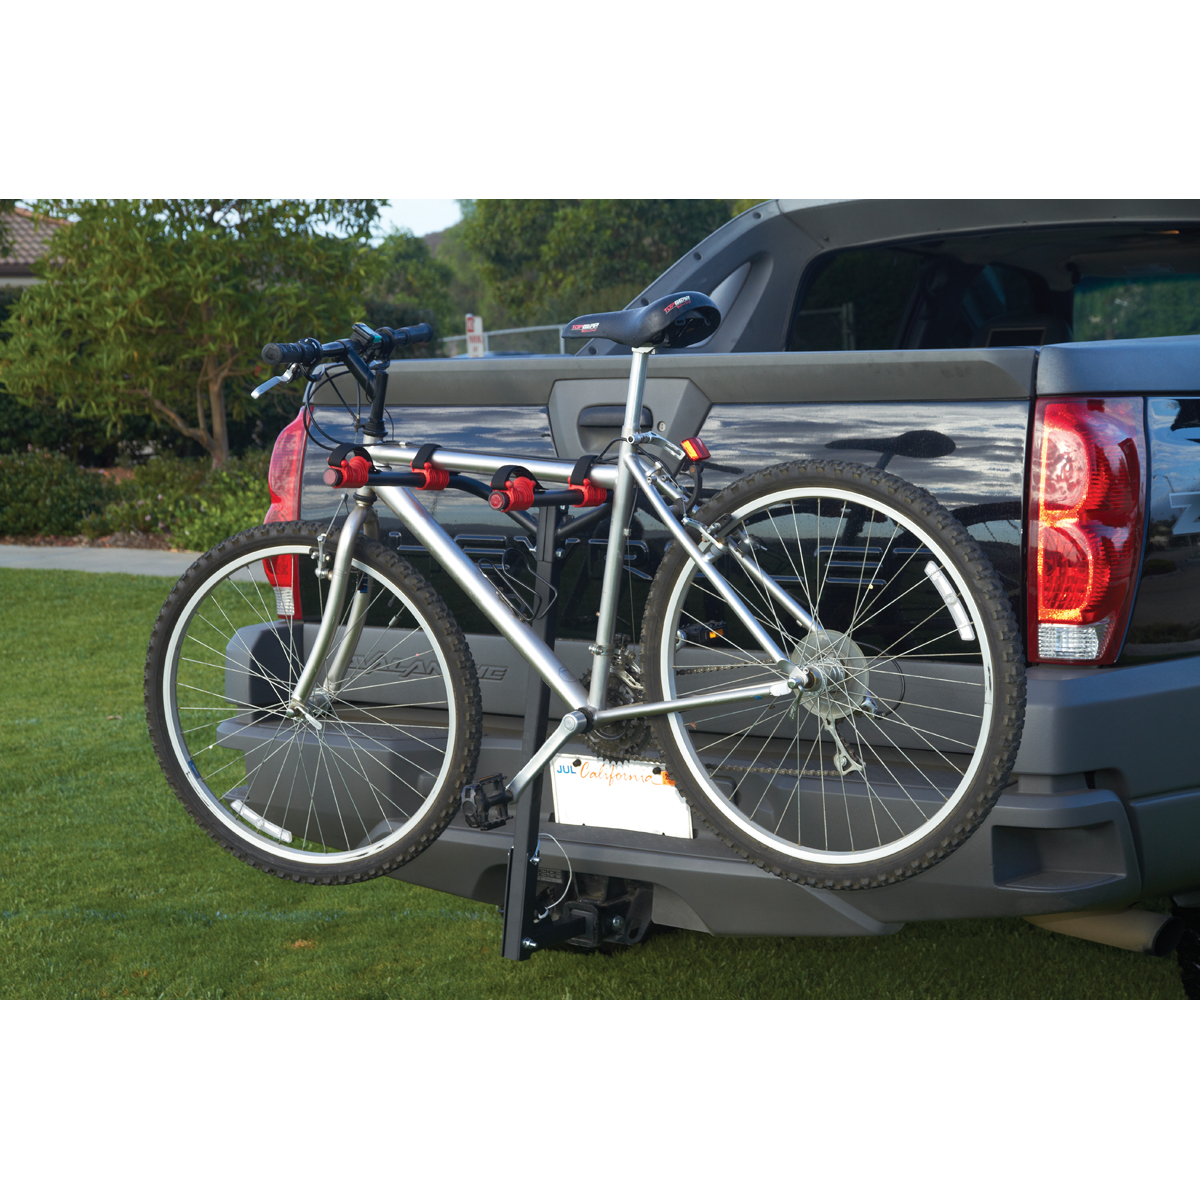 outdoors hollywood dp racks rack black use dual amazon ca ps bike sports parking commercial